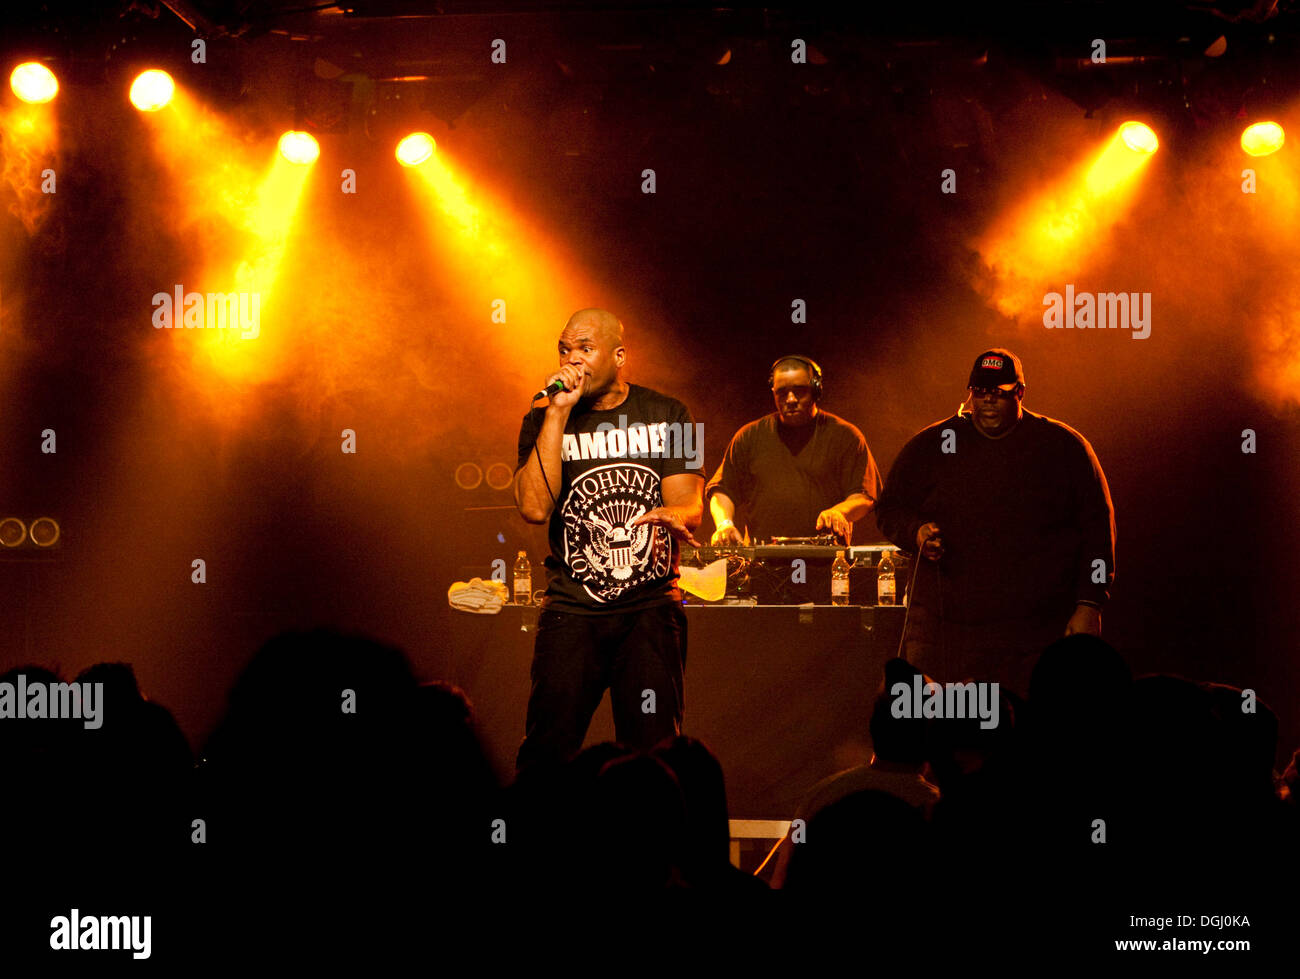 The U.S. hip-hop musician Darryl McDaniels aka DMC of RUN DMC, live in the Schueuer, Lucerne, Switzerland - Stock Image